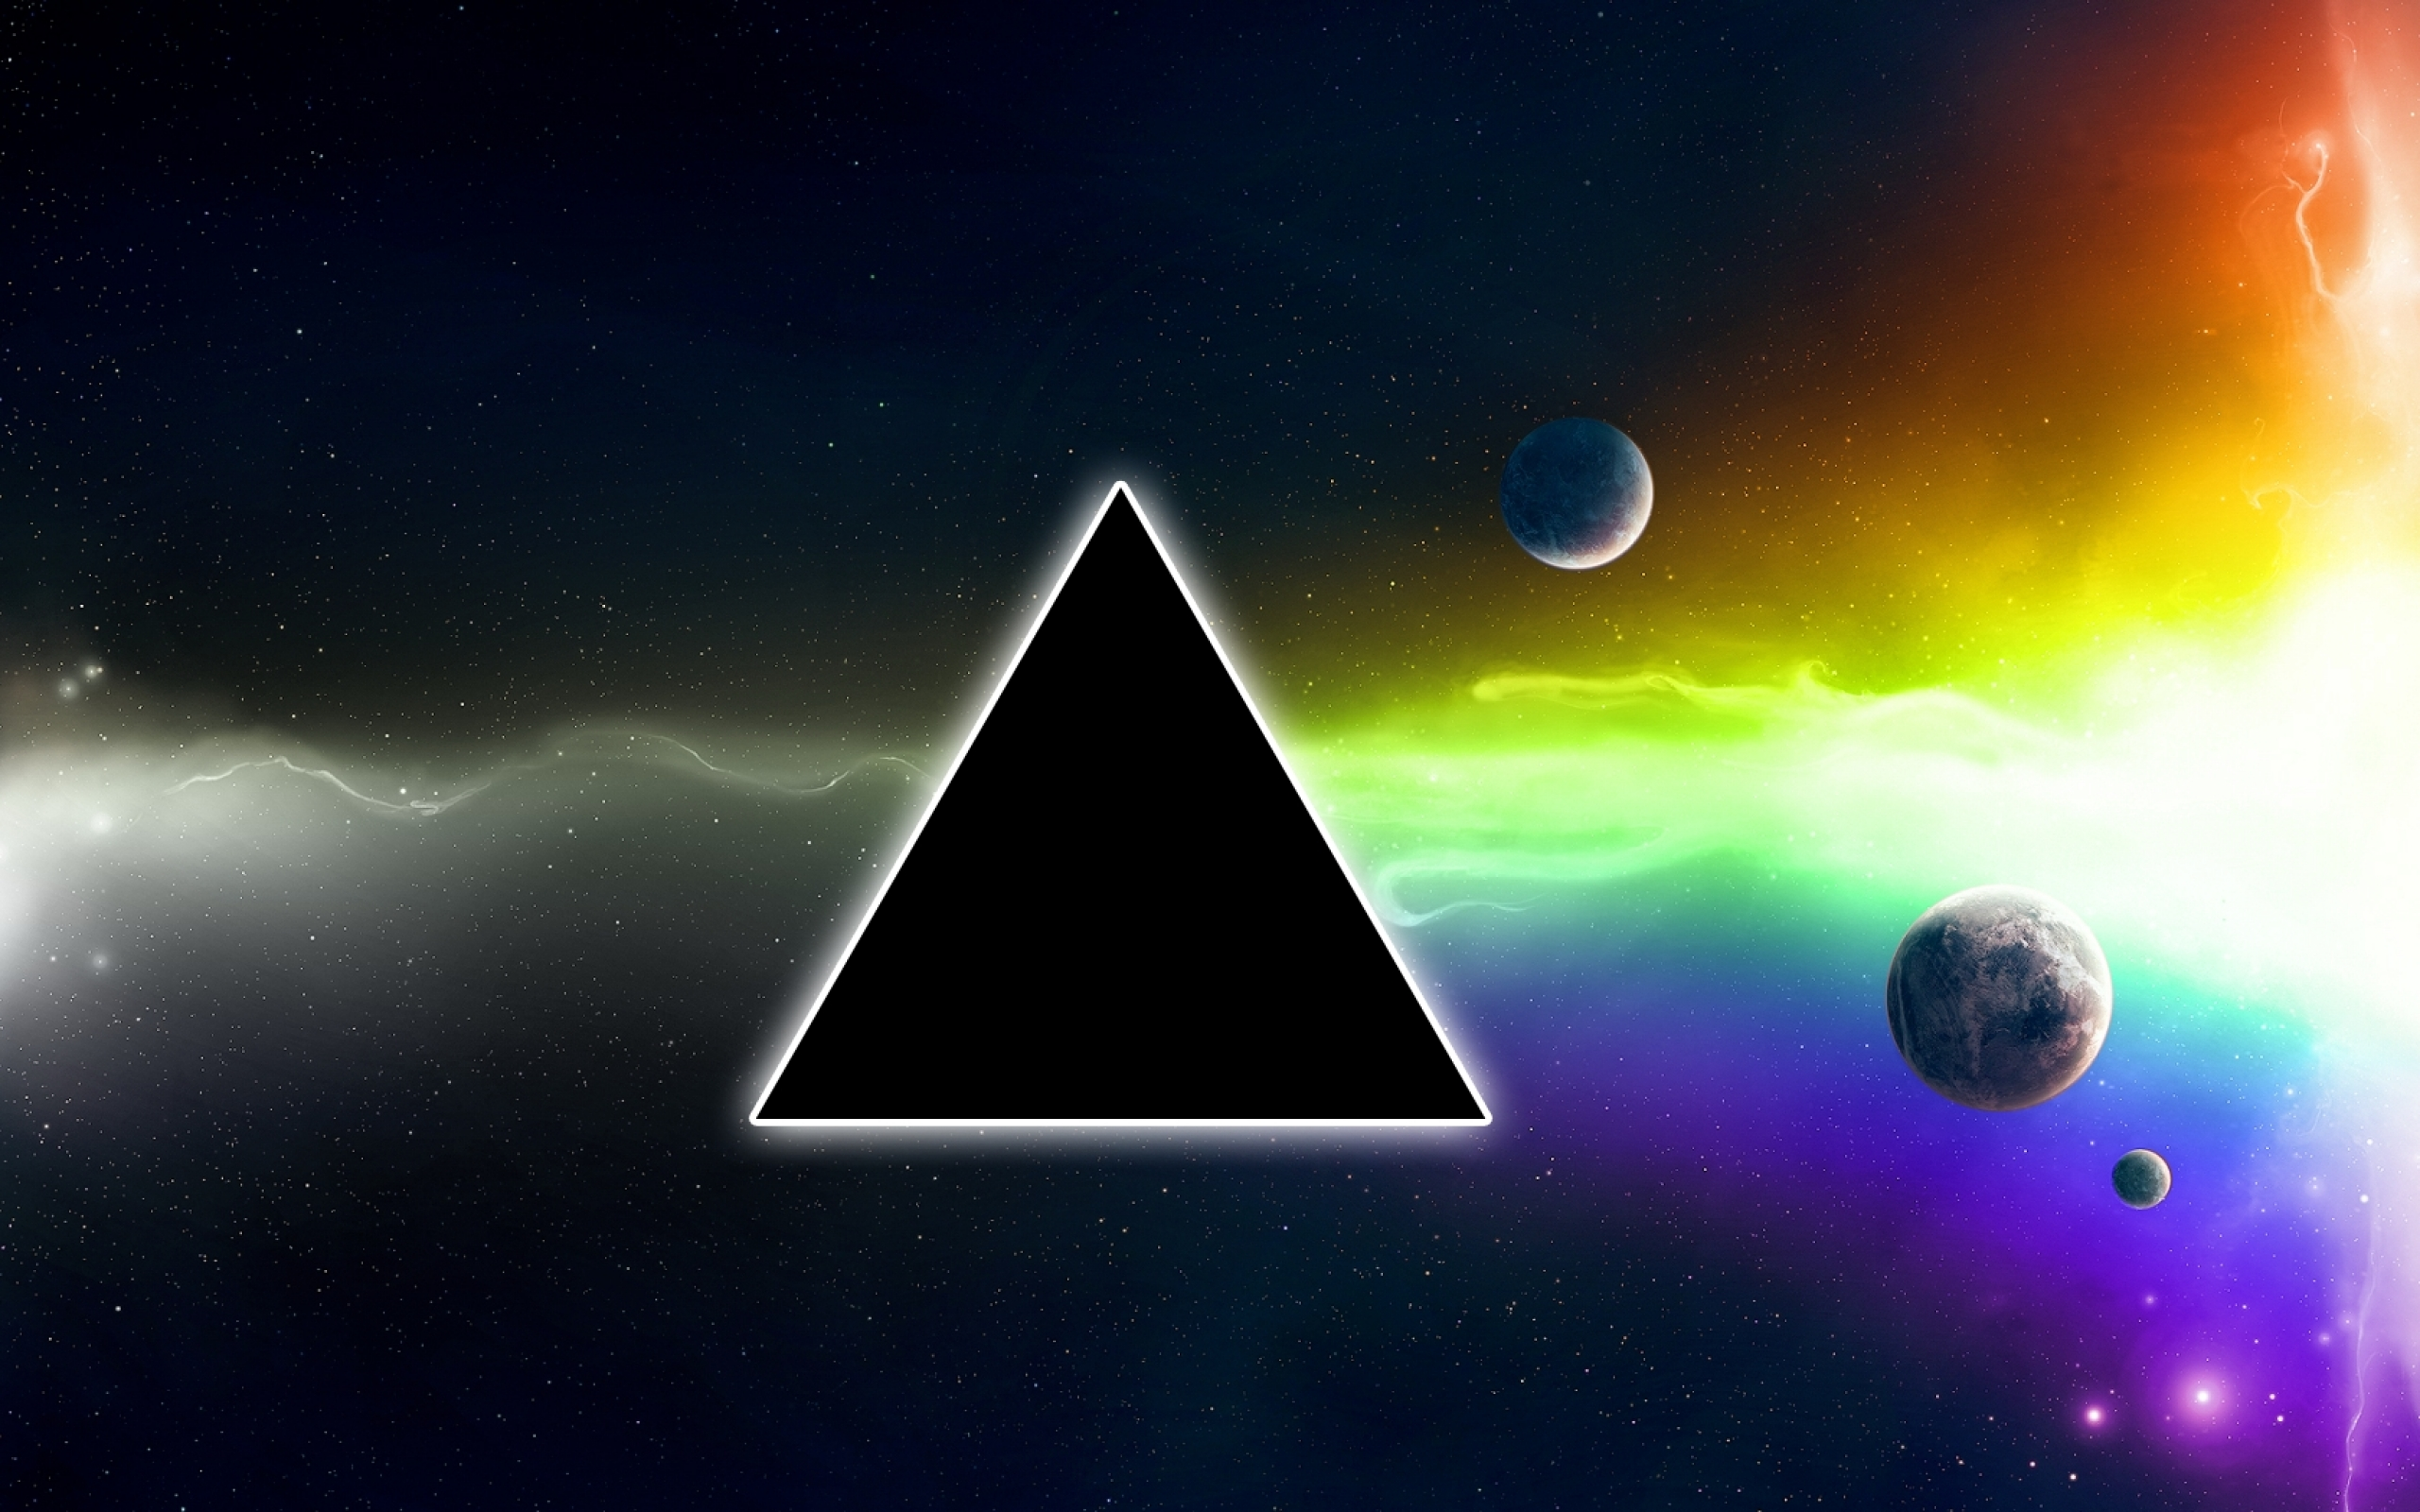 pink floyd dark side of the moon none 1680x1050 wallpaper High 2560x1600